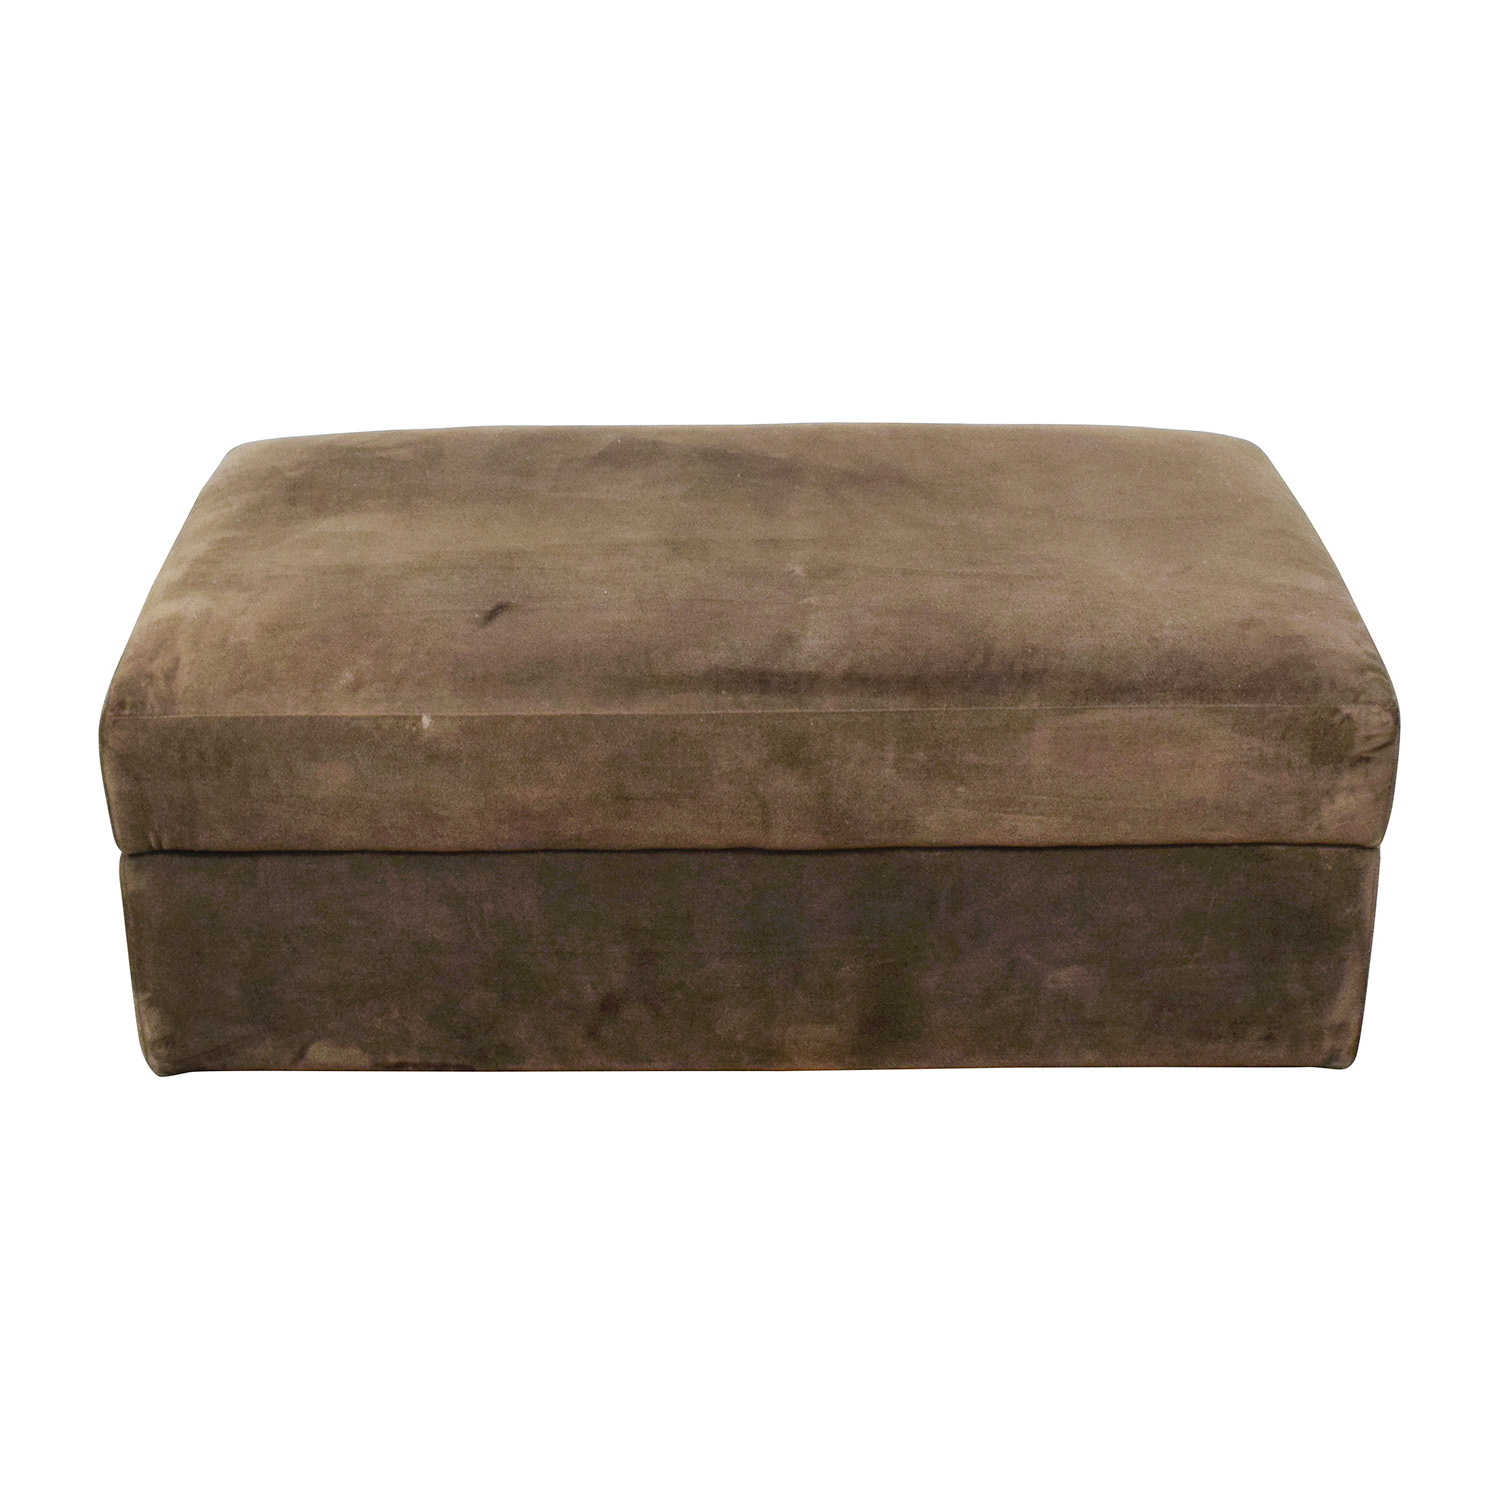 Crate and Barrel Crate & Barrel Brown Storage Ottoman dimensions